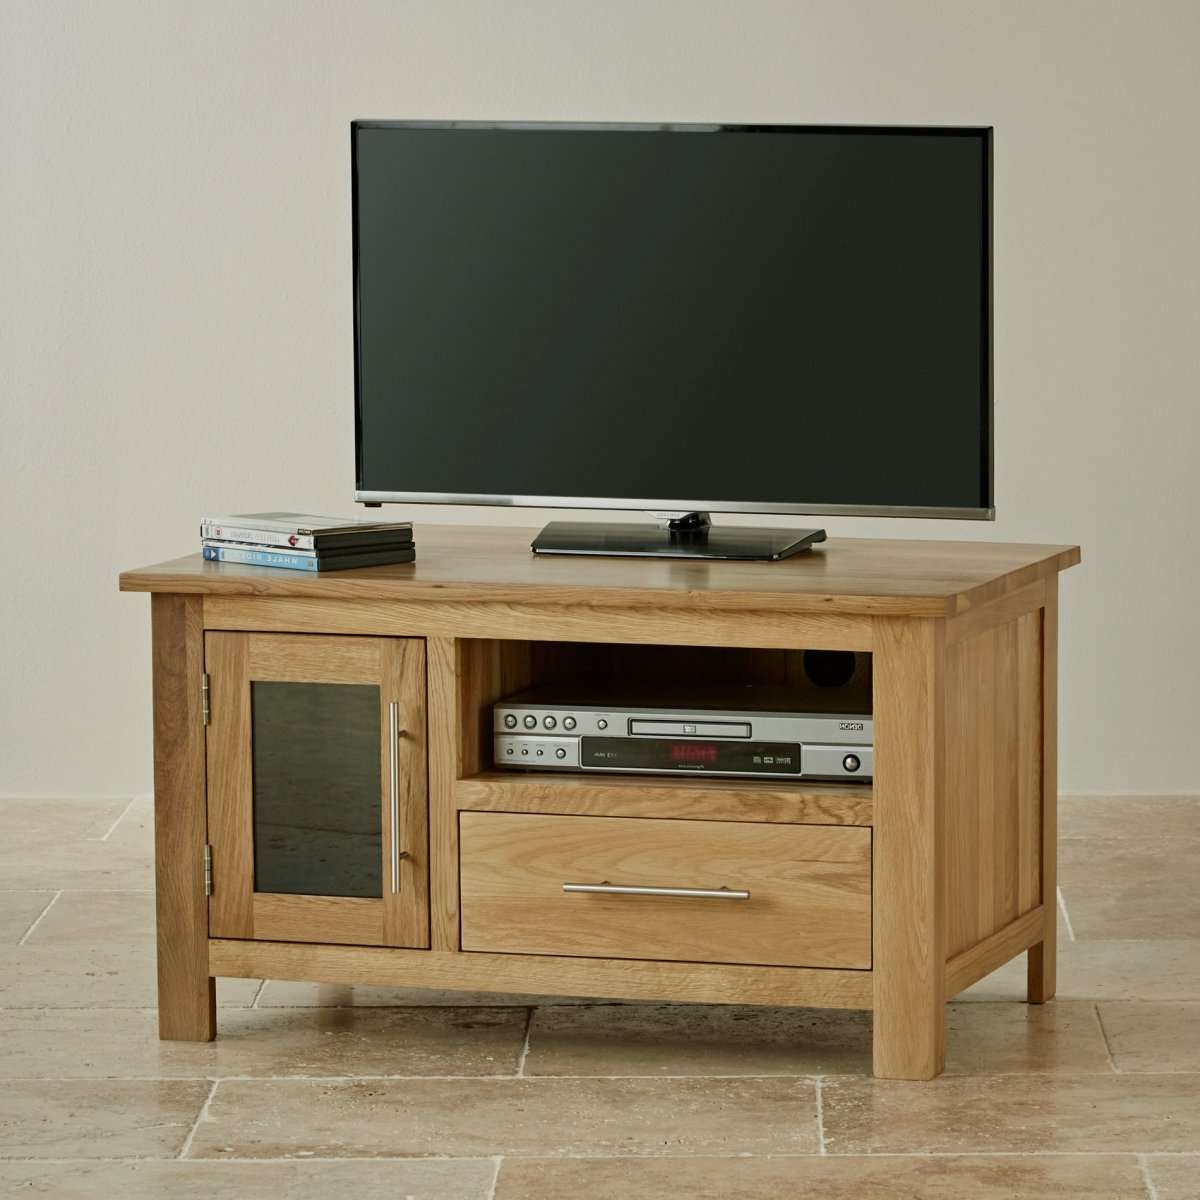 Rivermead Natural Solid Oak Tv + Dvd Cabinet | Lounge Furniture With Oak Tv Cabinets (View 7 of 20)